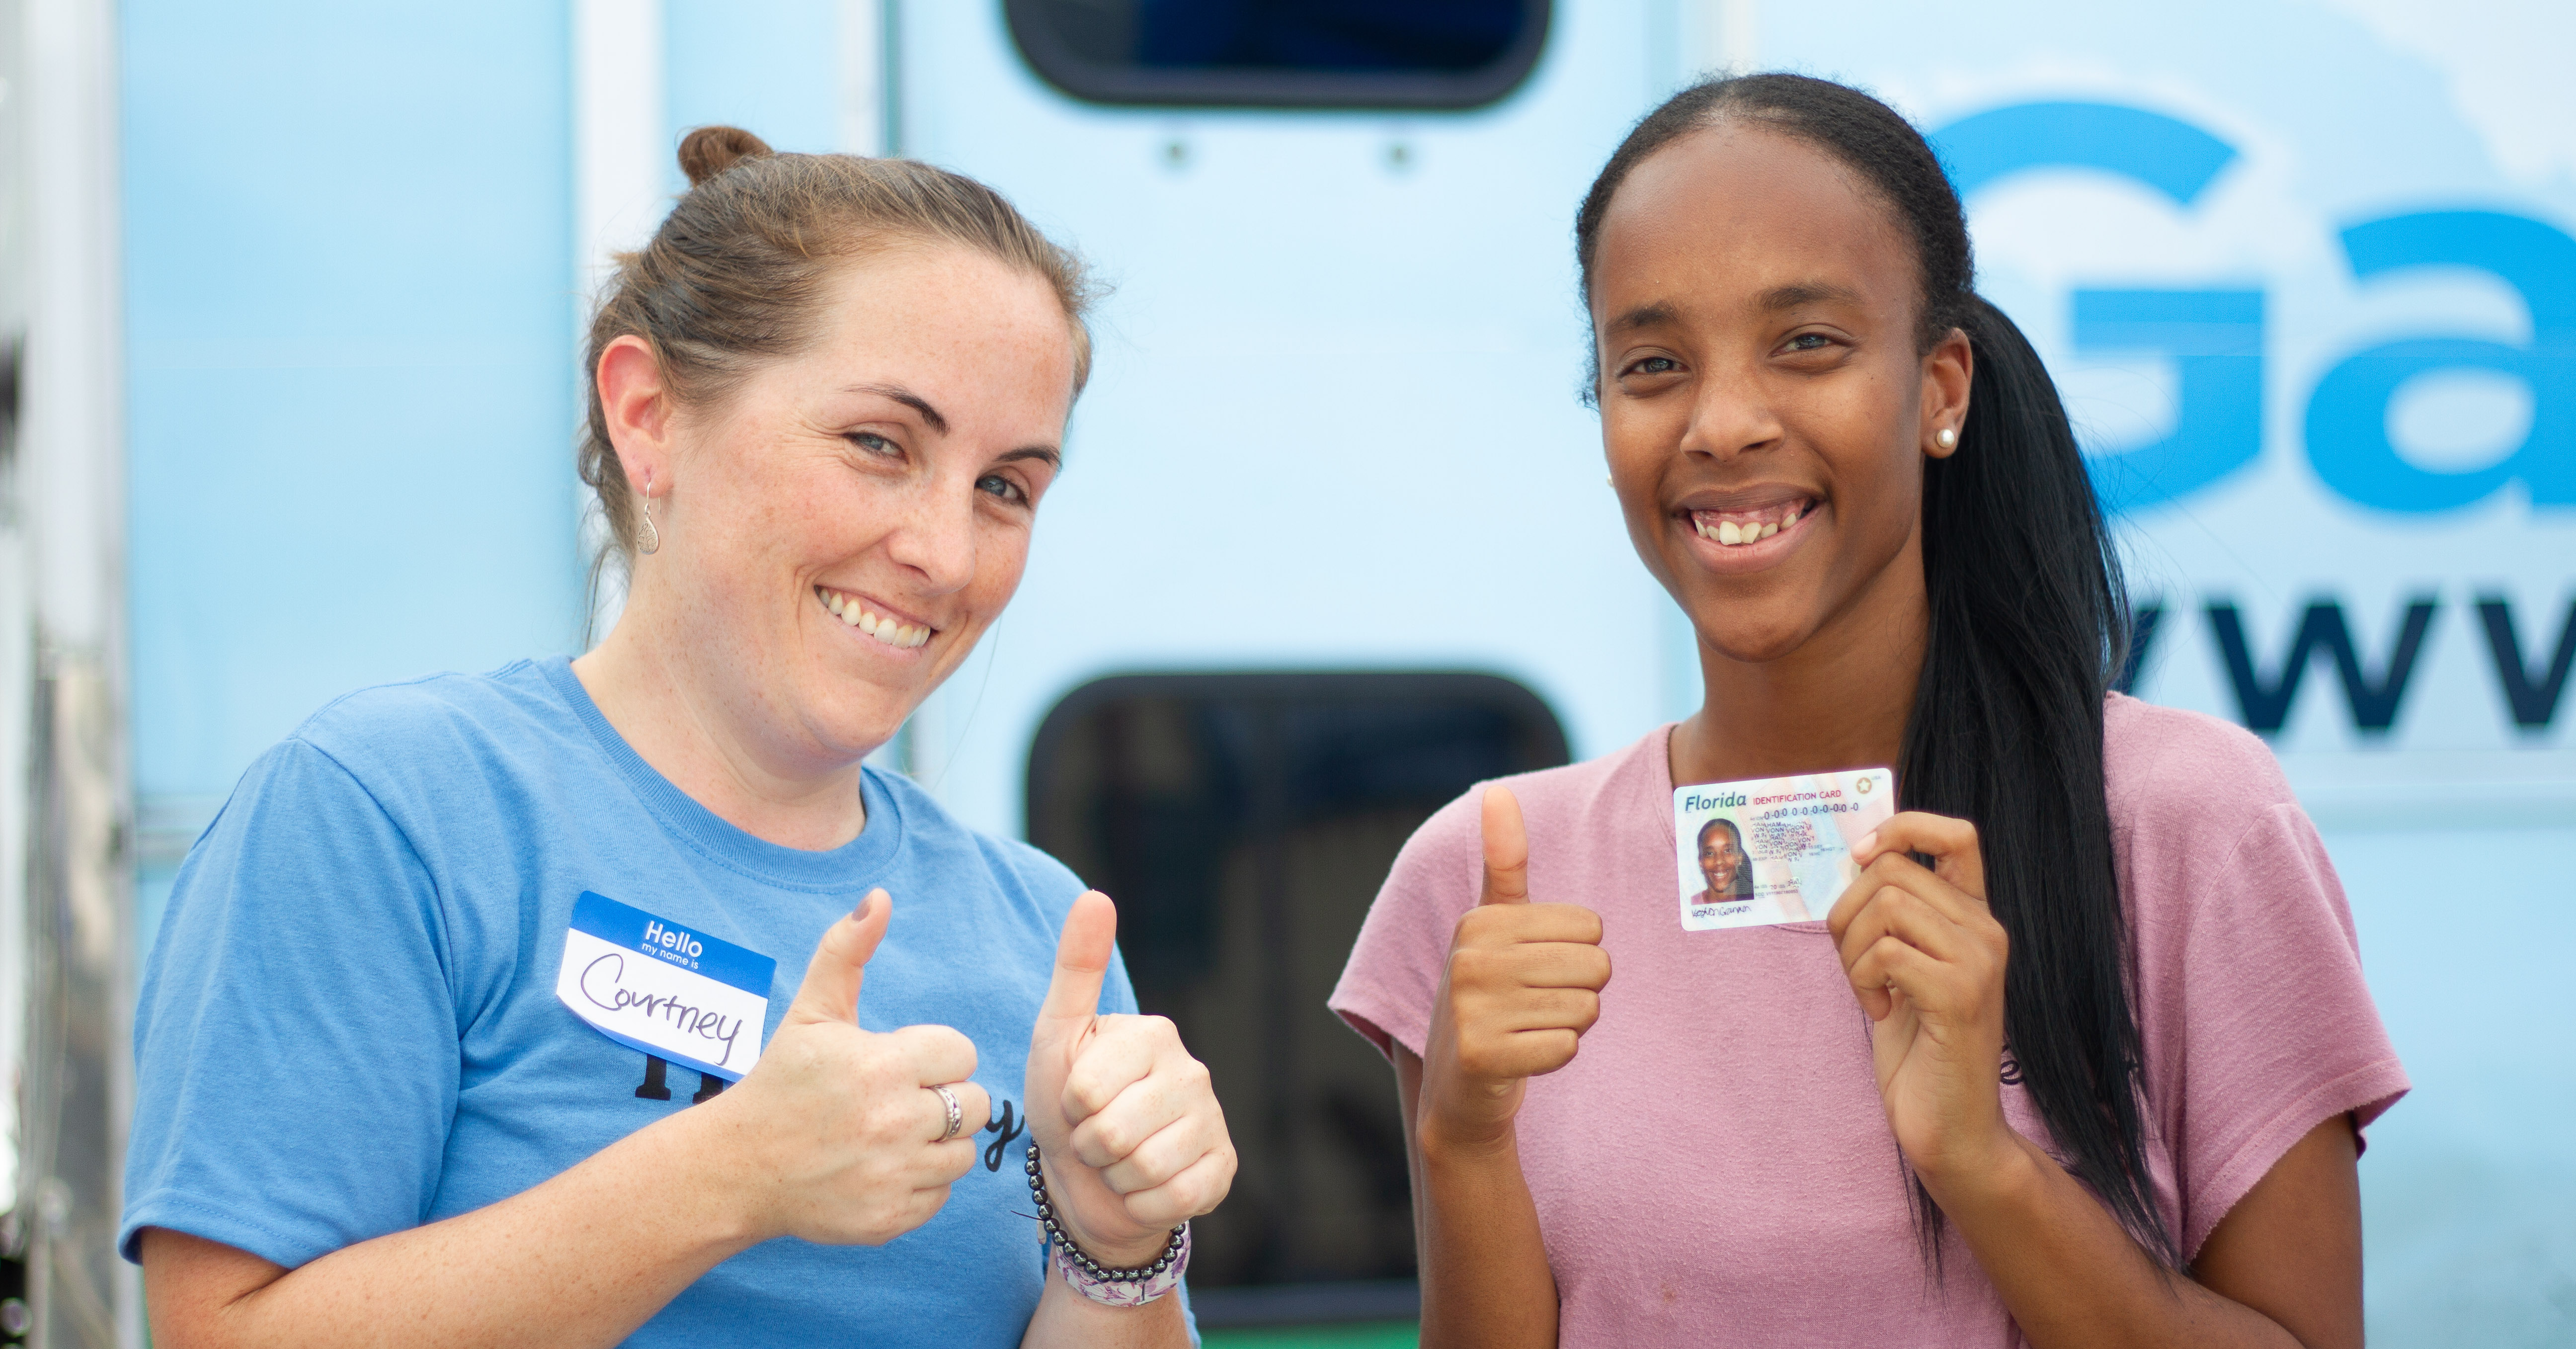 A client and volunteer celebrate another fresh ID